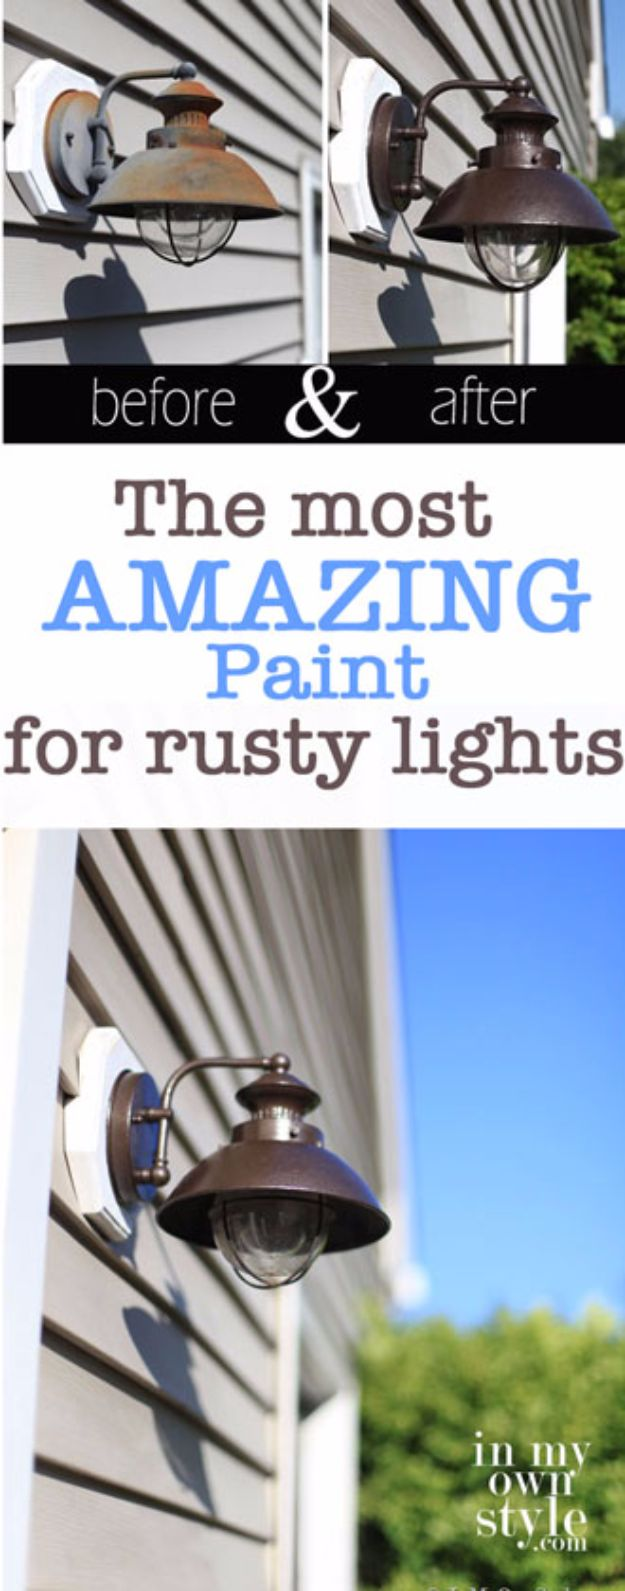 DIY Home Improvement On A Budget - Transform Outdoor Light Fixtures - Easy and Cheap Do It Yourself Tutorials for Updating and Renovating Your House - Home Decor Tips and Tricks, Remodeling and Decorating Hacks - DIY Projects and Crafts by DIY JOY #diy